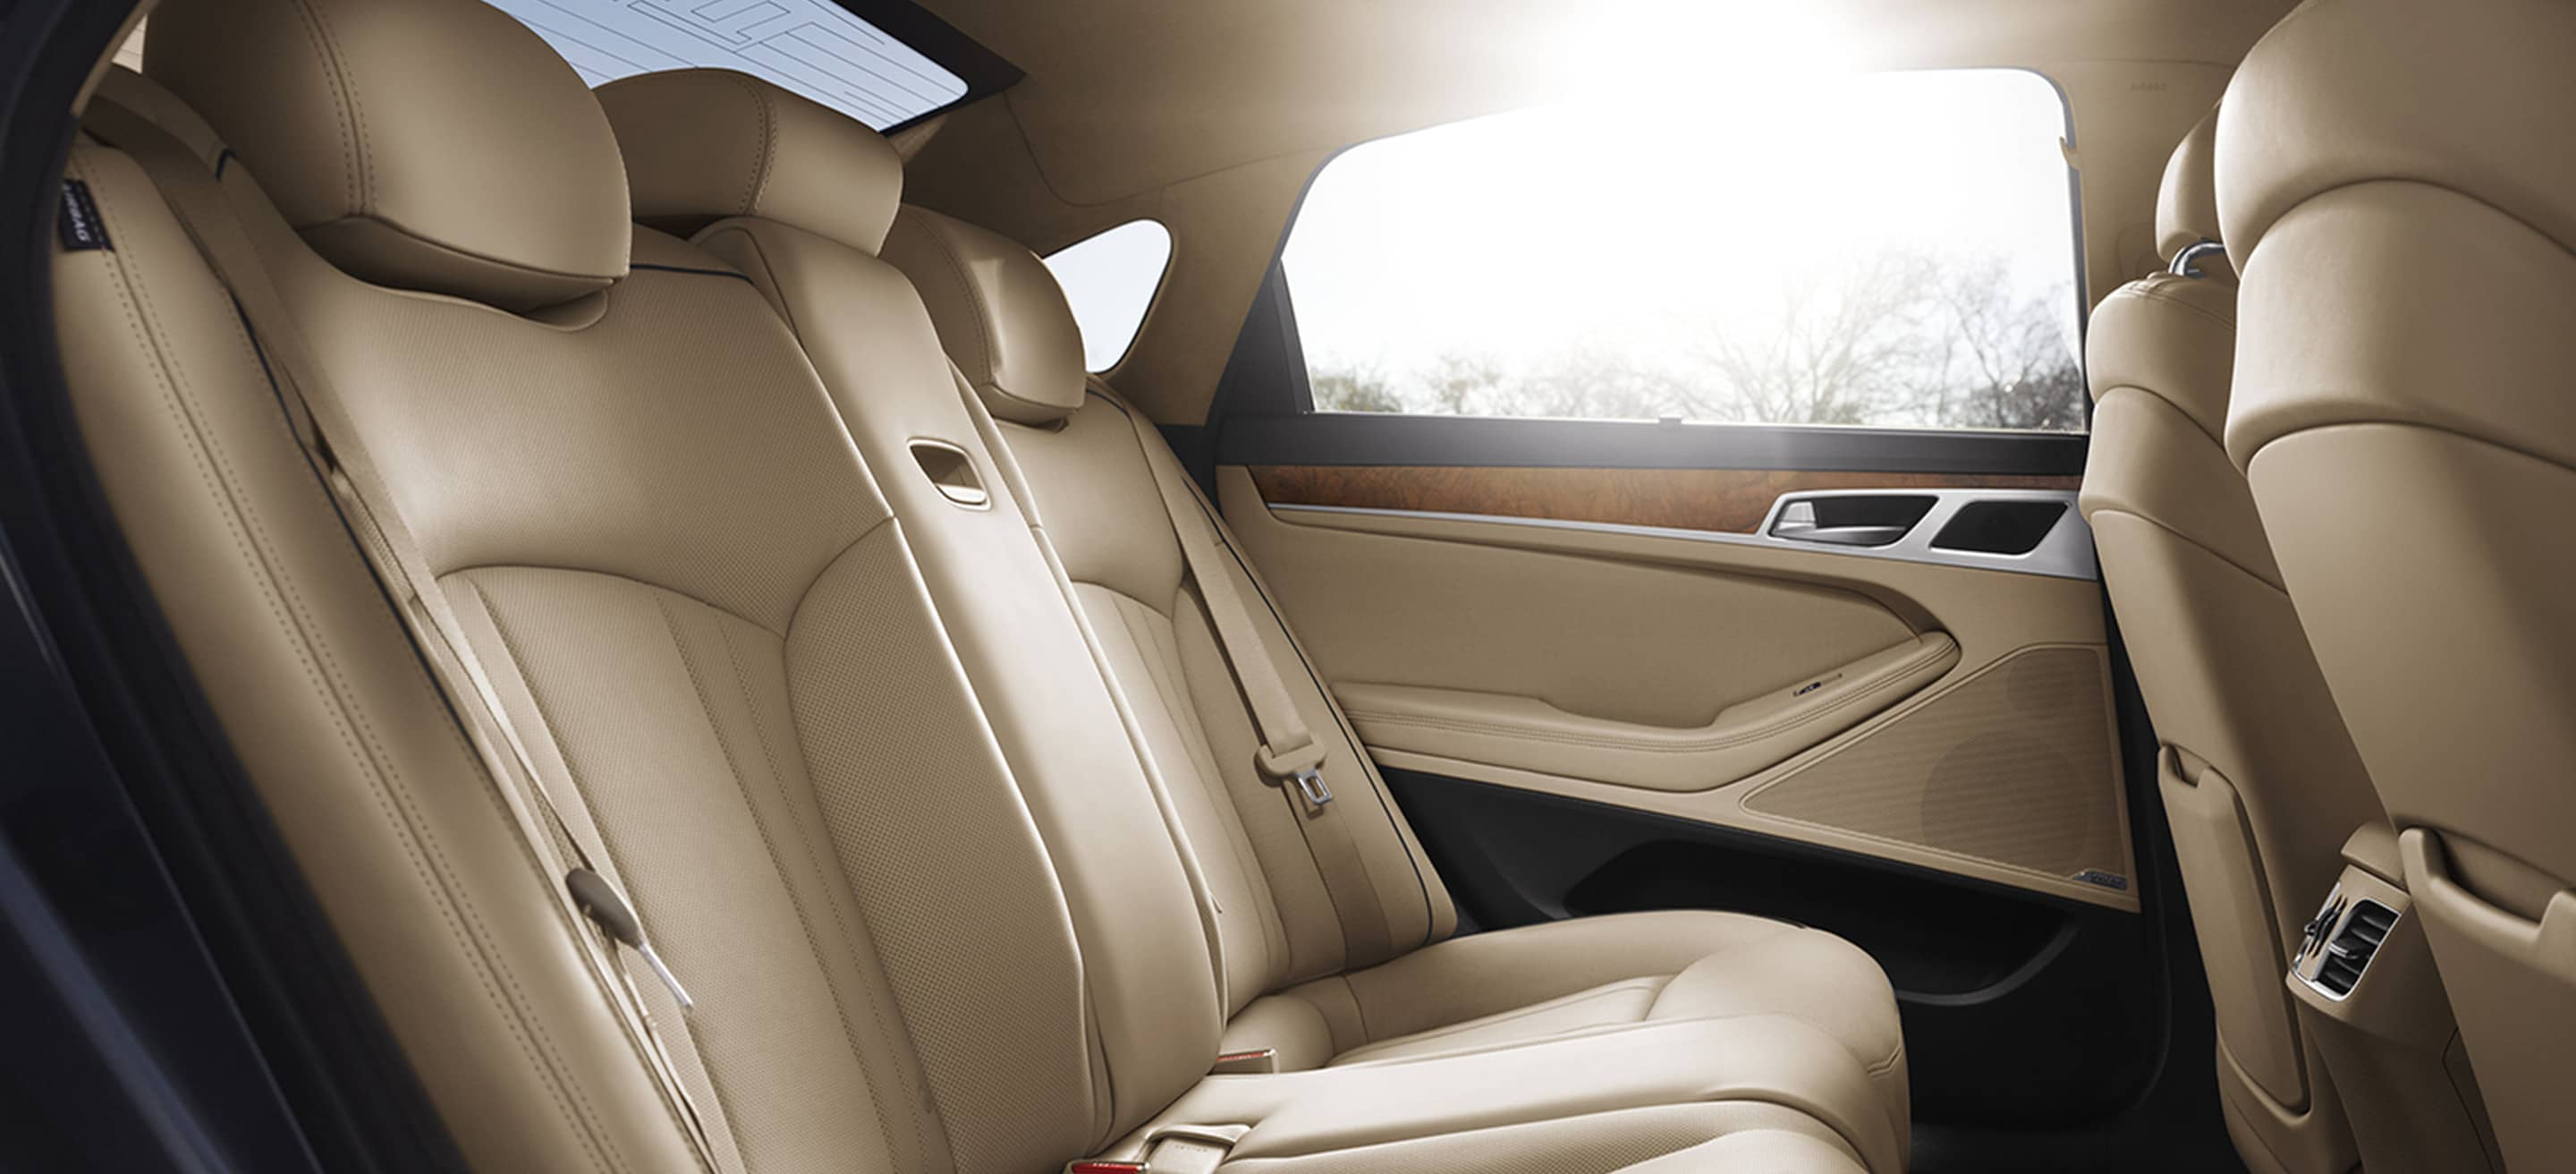 Full-Grain Leather Seating in the Genesis G80!